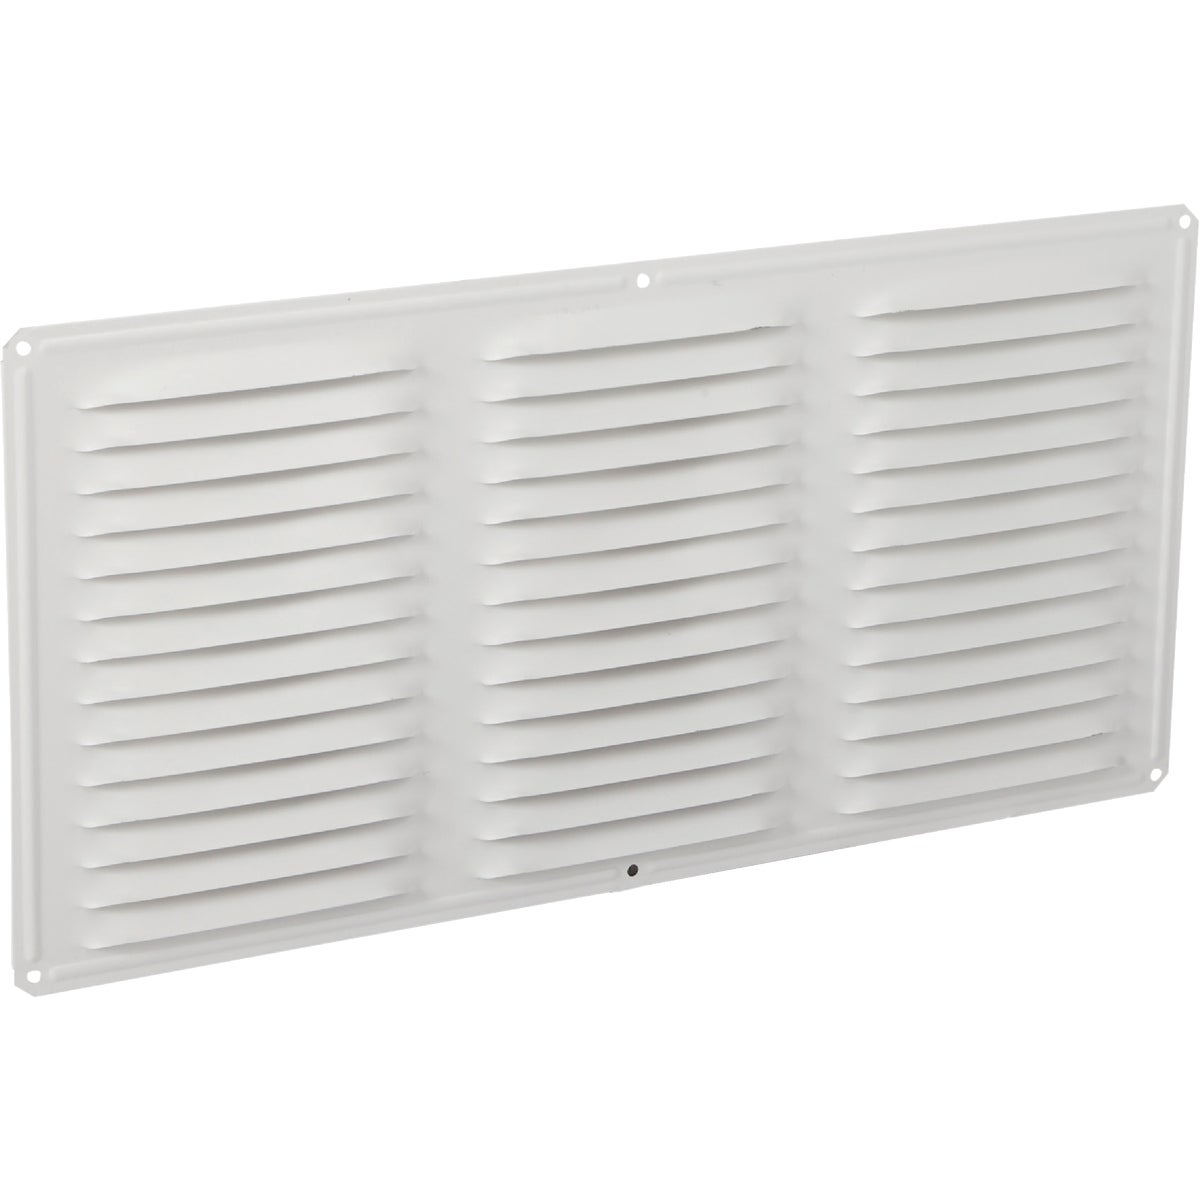 16X8 WHT UNDER EAVE VENT - 84211 by Air Vent Inc